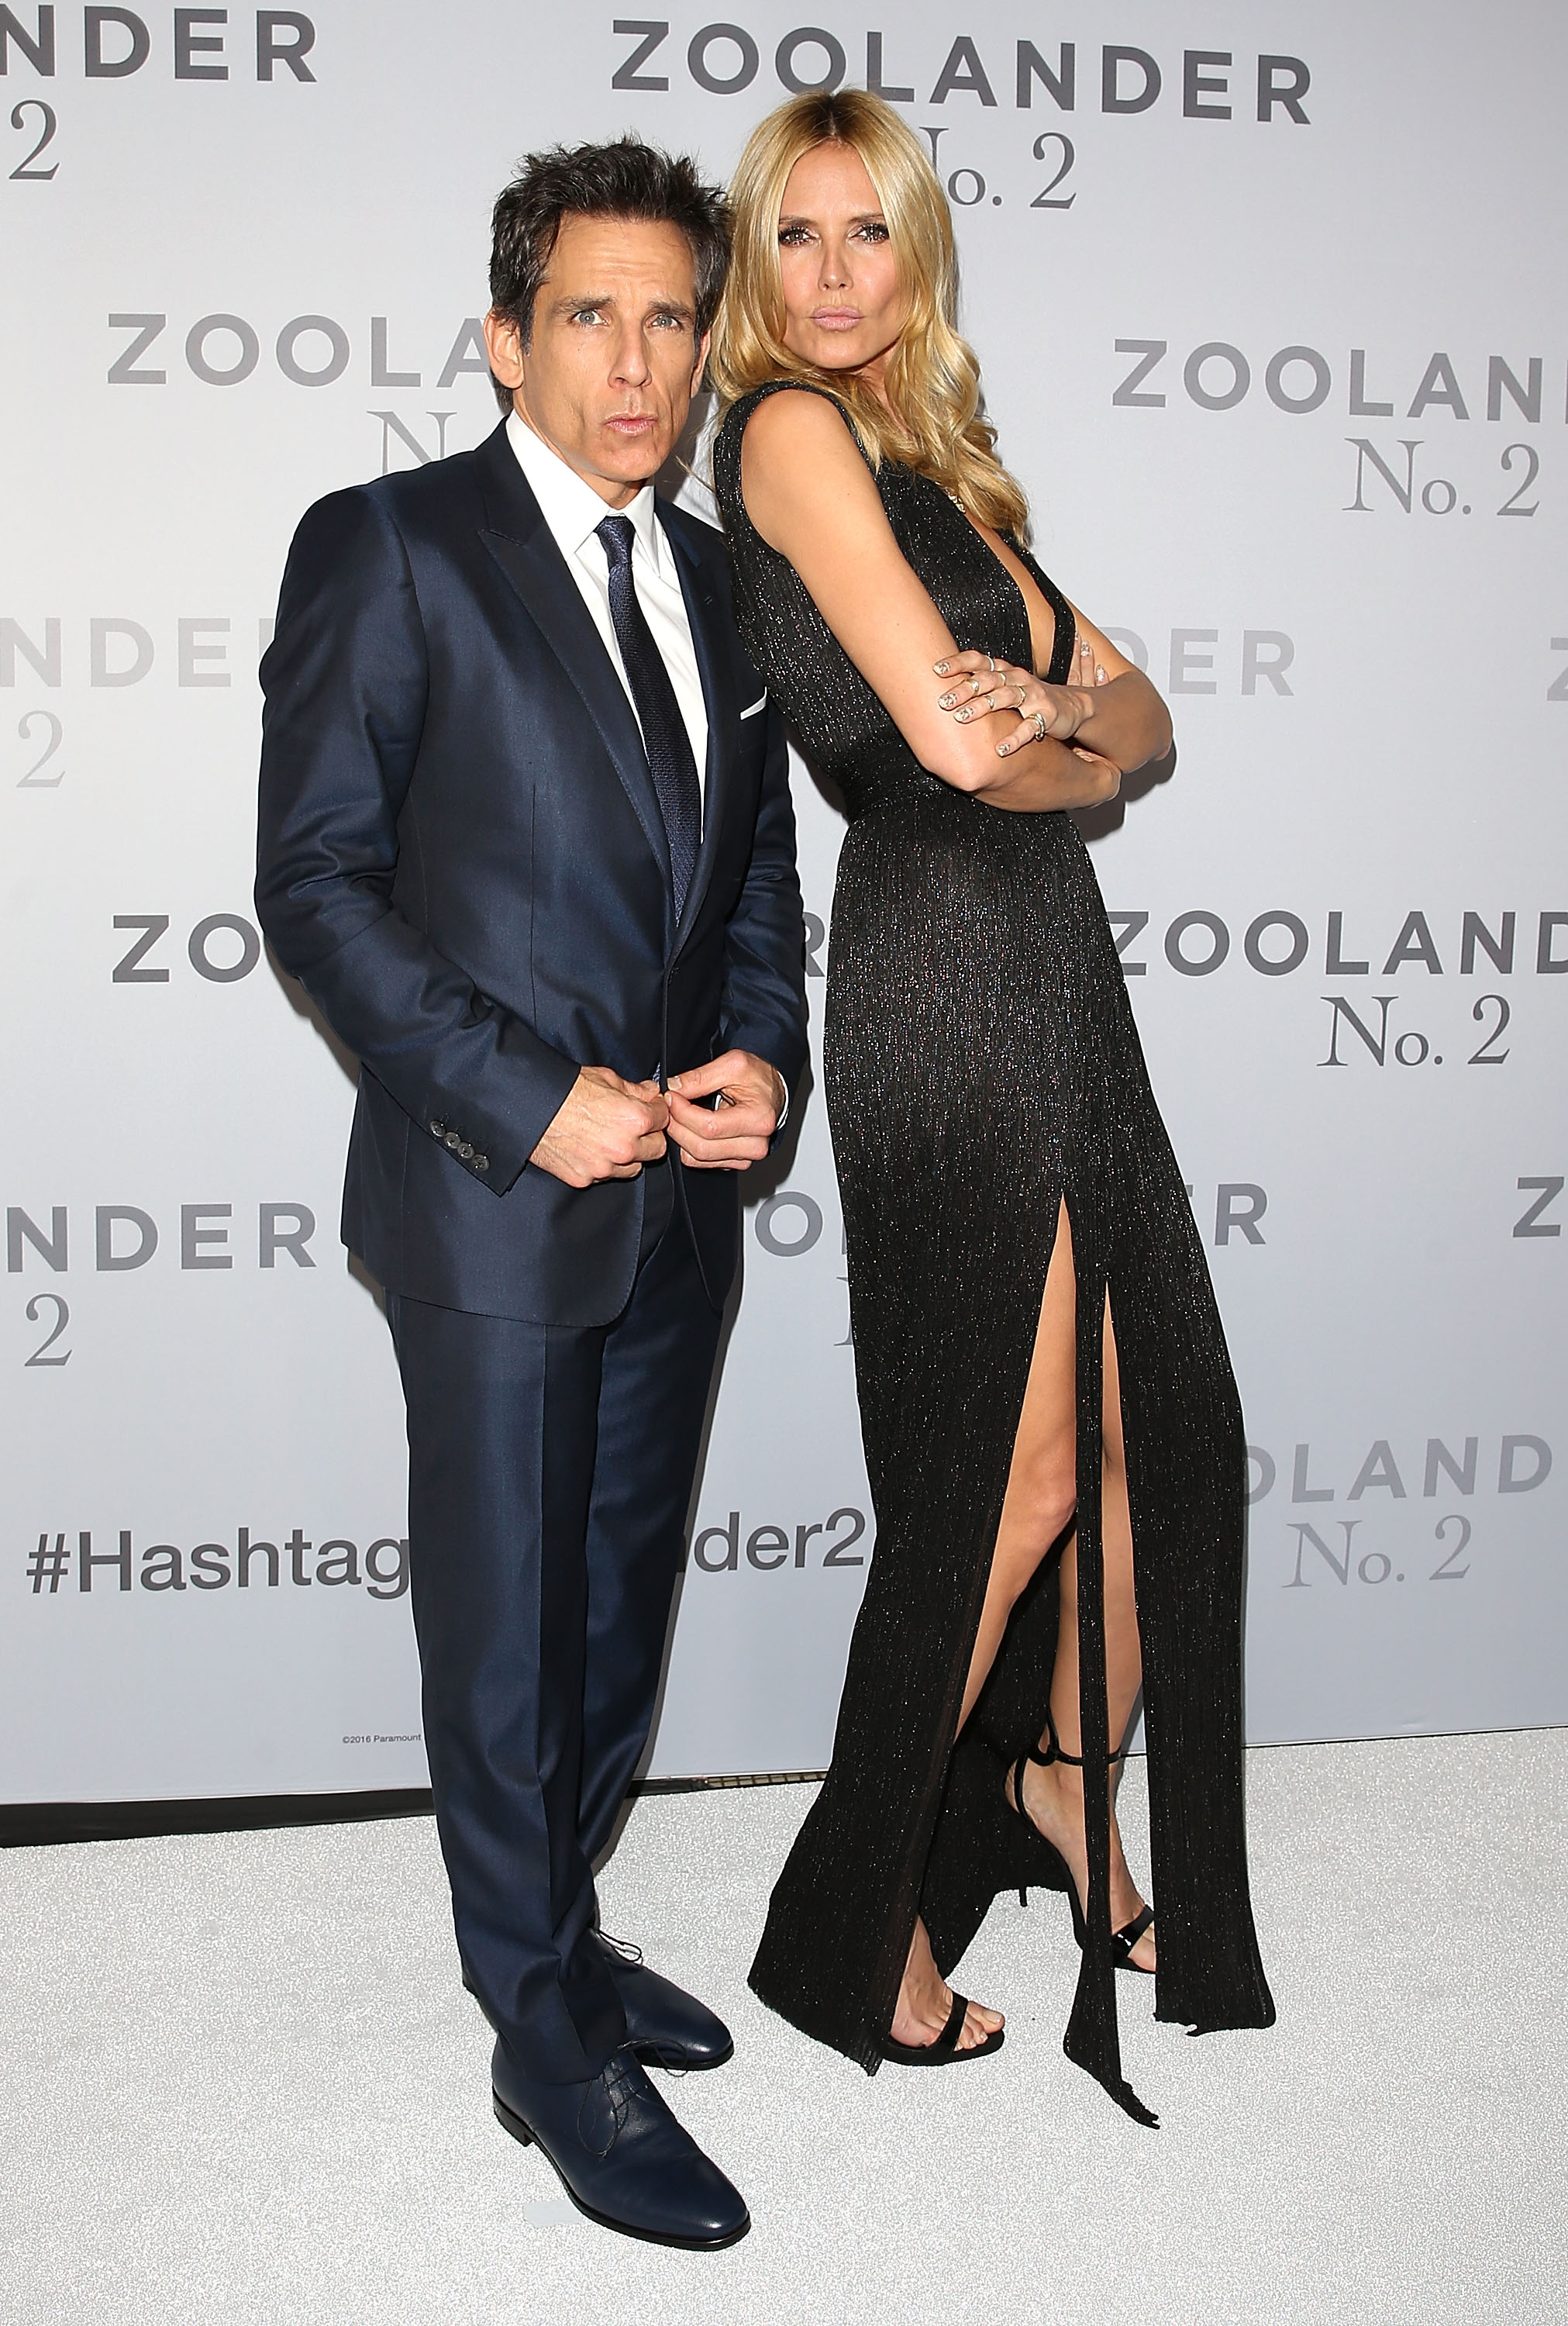 SYDNEY, AUSTRALIA - JANUARY 26: Ben Stiller and Heidi Klum attend the Sydney Fan Screening Event of the Paramount Pictures film 'Zoolander No. 2' at the State Theatre on January 26, 2016 in Sydney, Australia. (Photo by Caroline McCredie/Getty Images for Paramount Pictures) *** Local Caption *** Ben Stiller; Heidi Klum